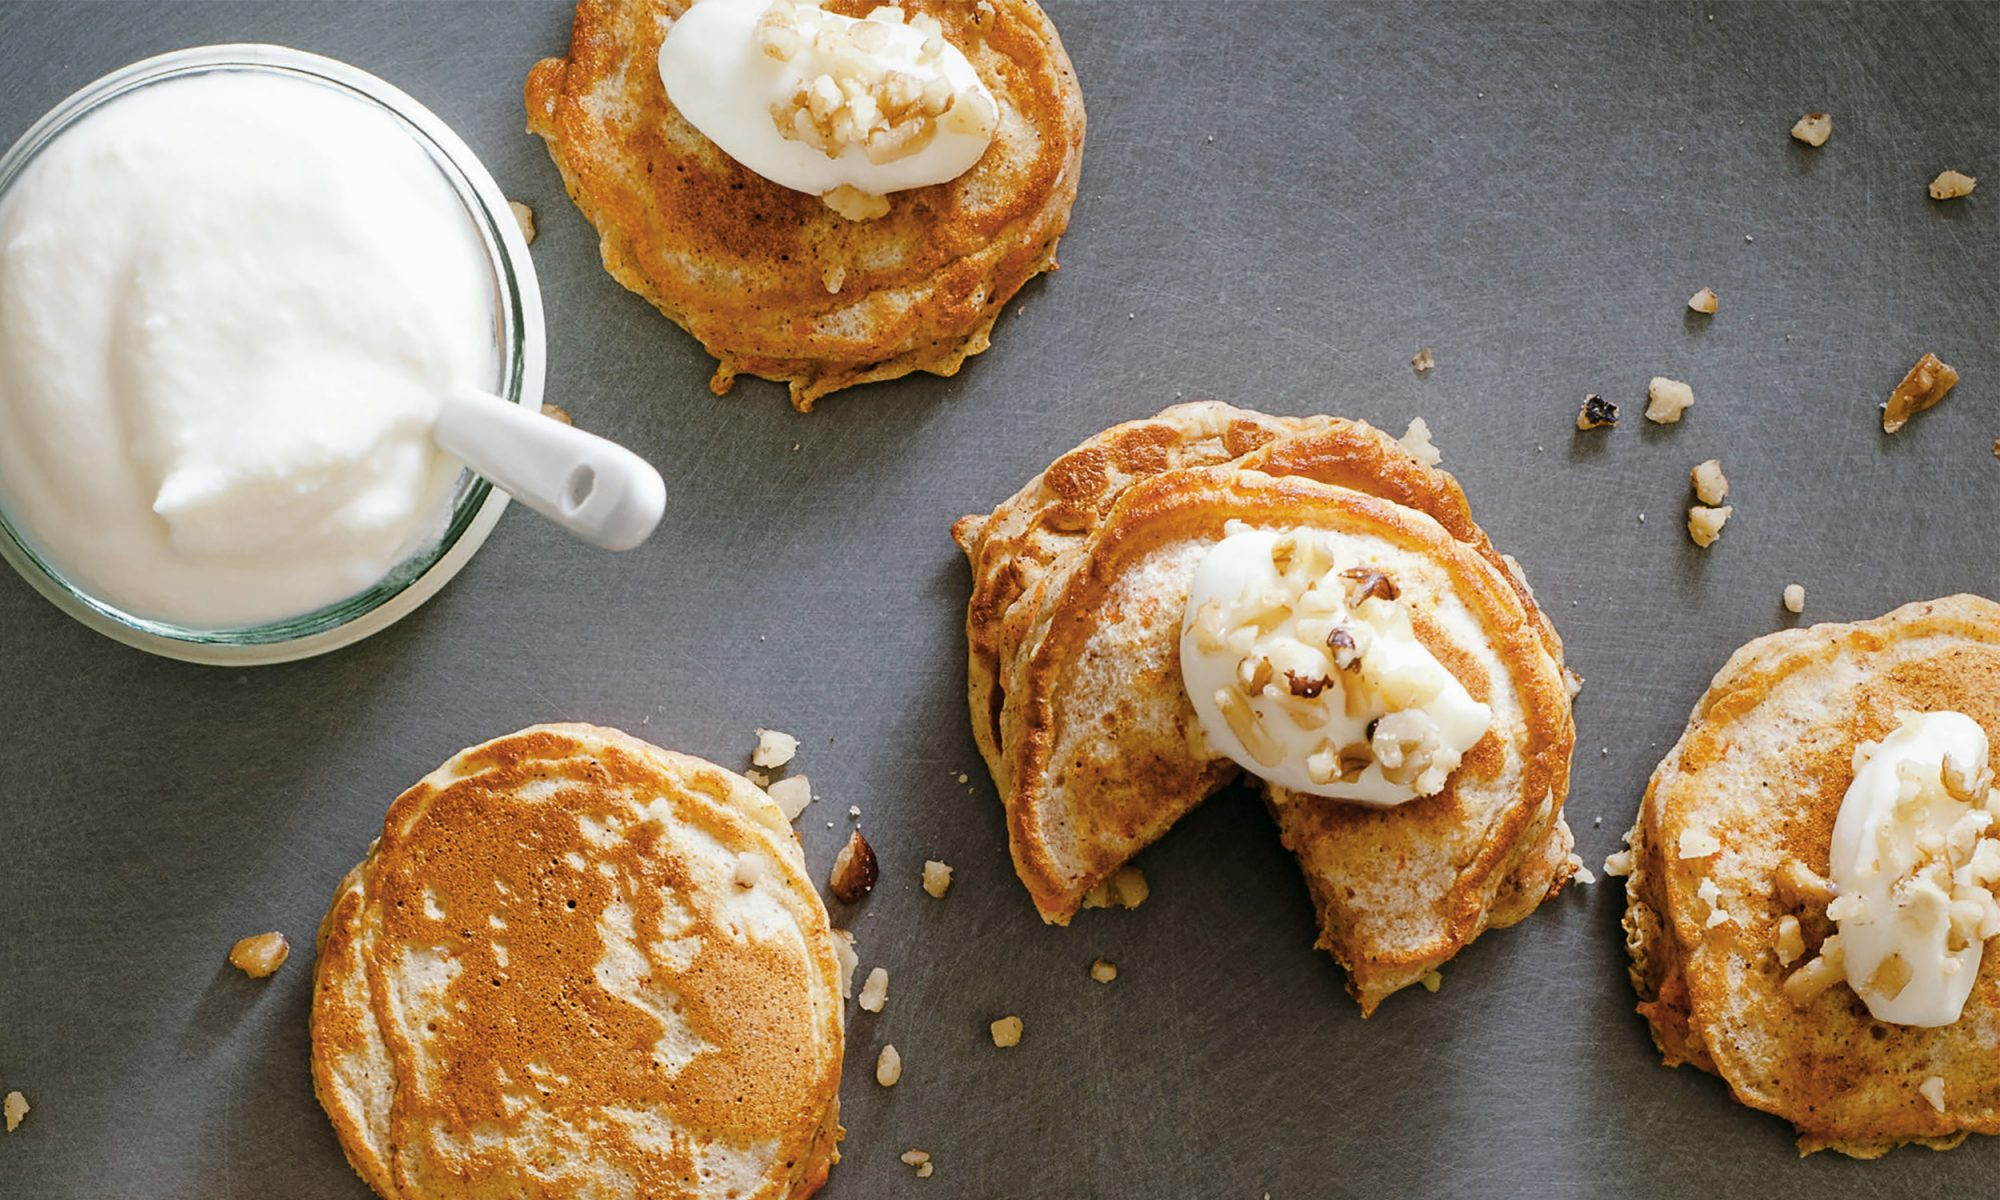 Make Carrot Cake Pancakes with Fall Flavors